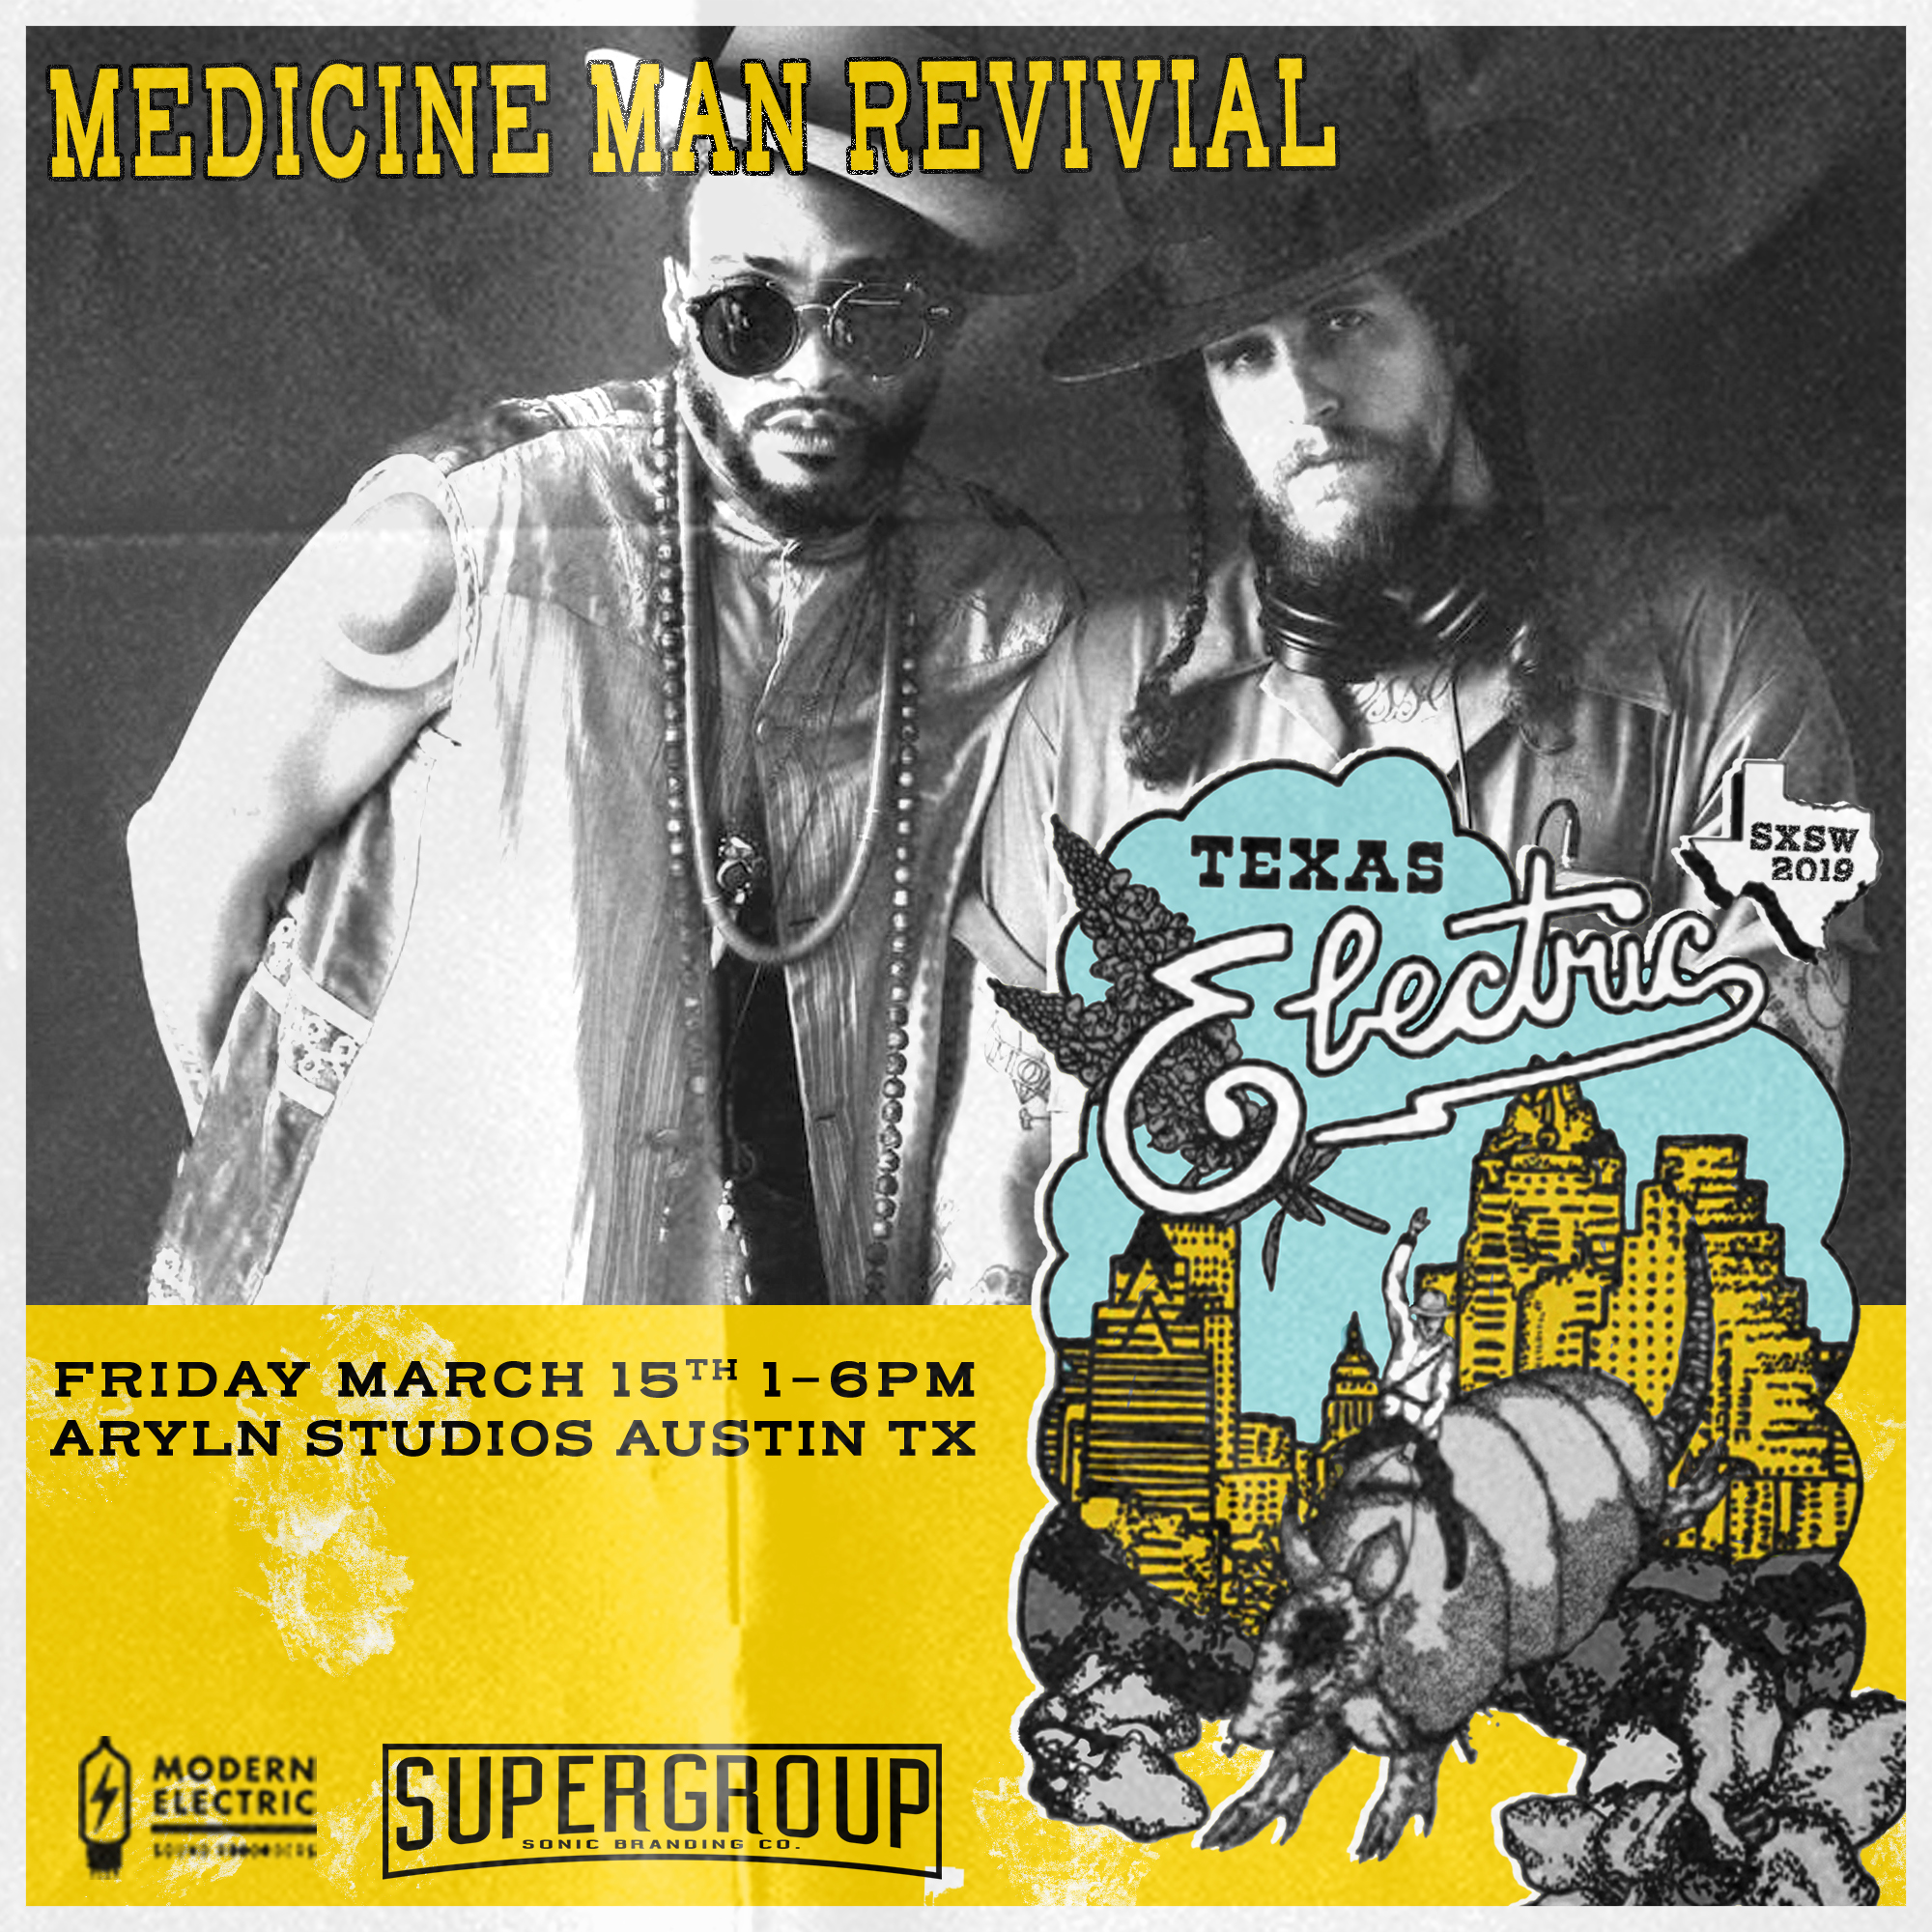 TEAM USA - Medicine Man Revival is the funky, futuristic soul collaboration of artistry, production and performance by Keite Young and Jason Robert Burt.